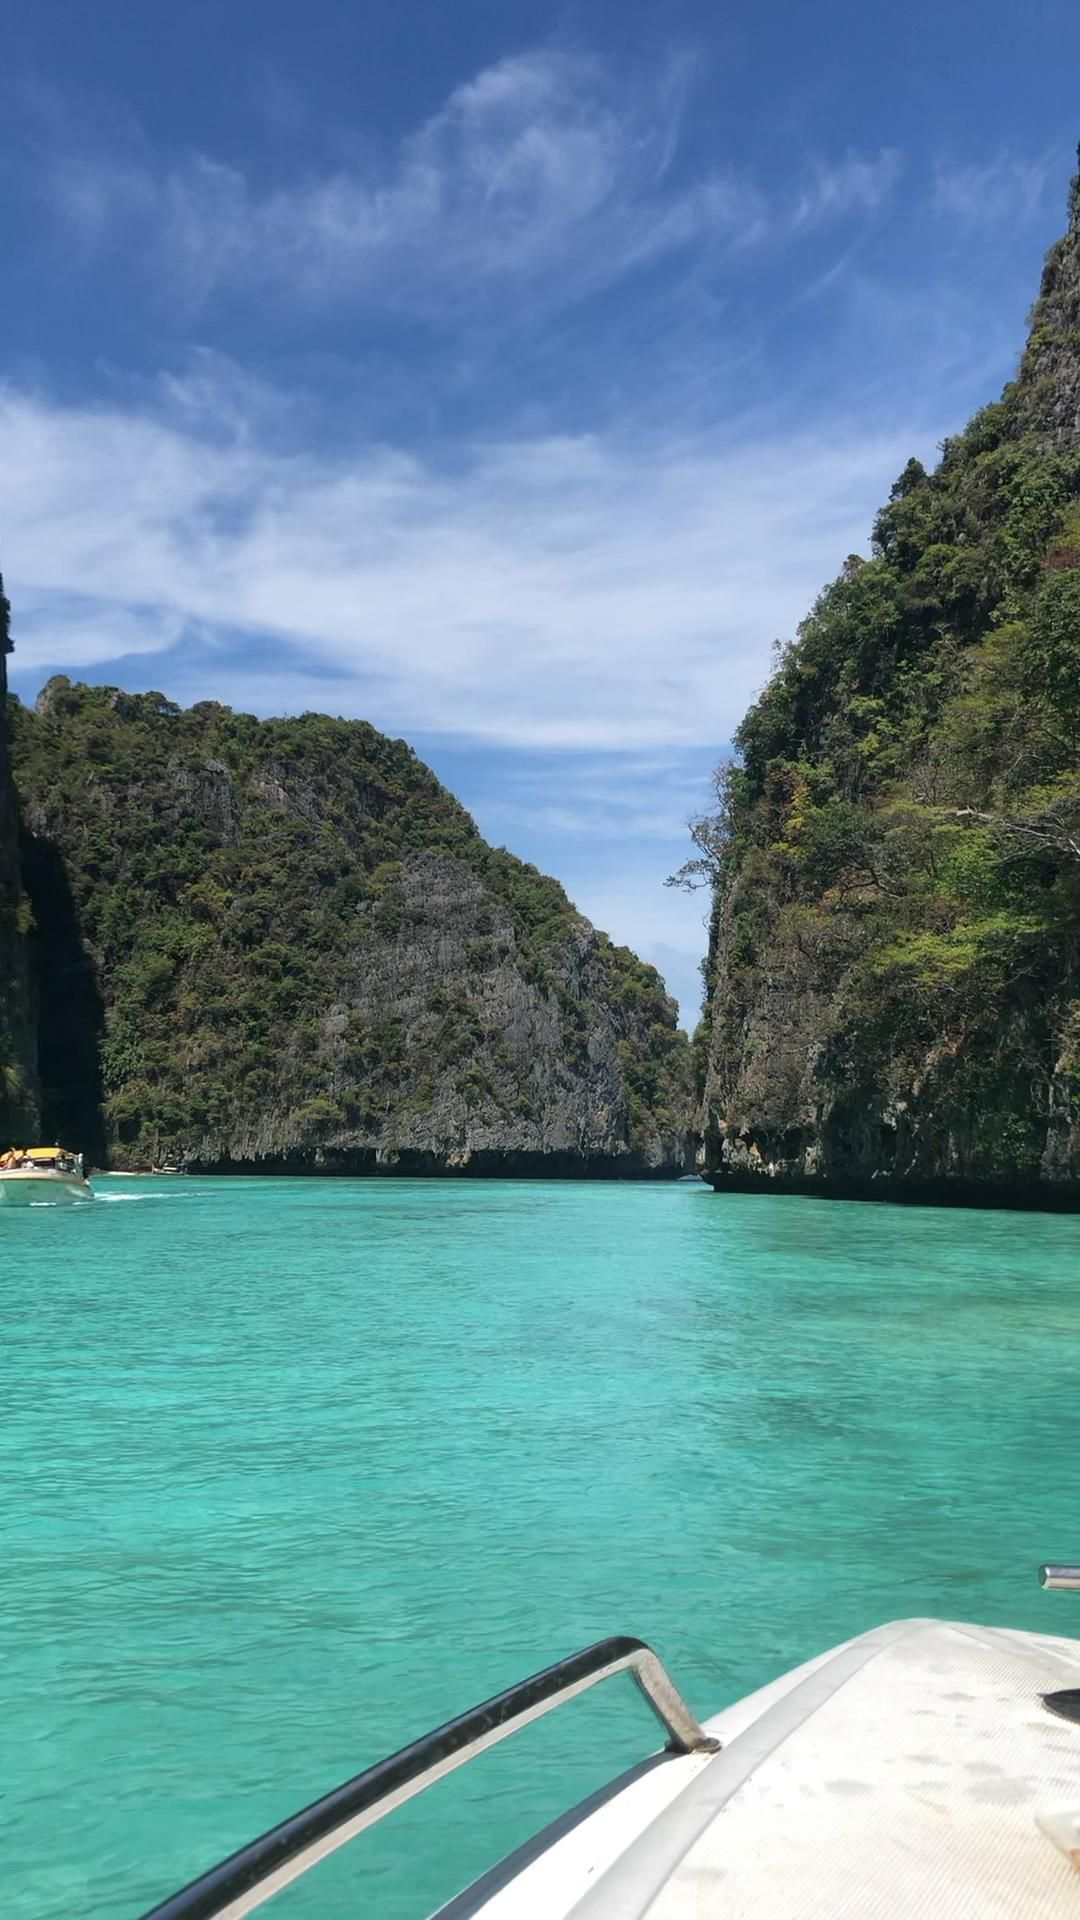 Island hopping through the most beautiful islands in Thailand